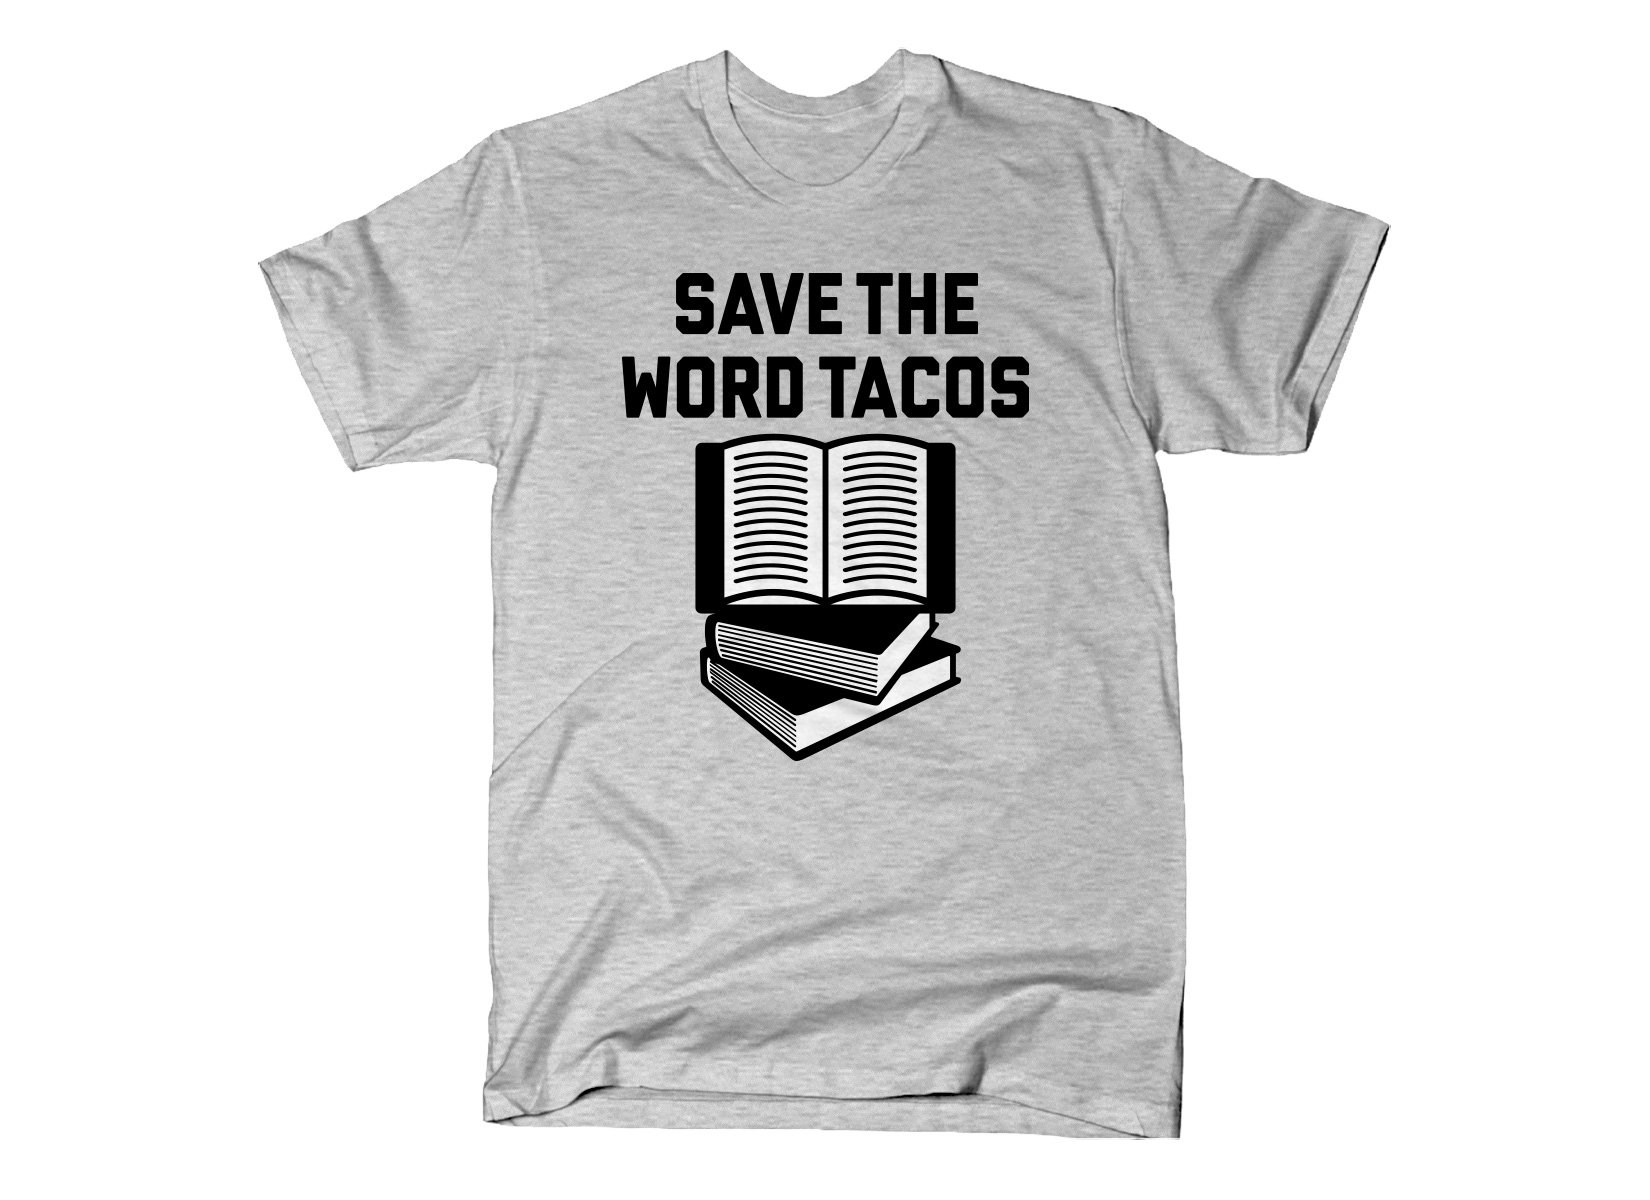 Save The Word Tacos on Mens T-Shirt